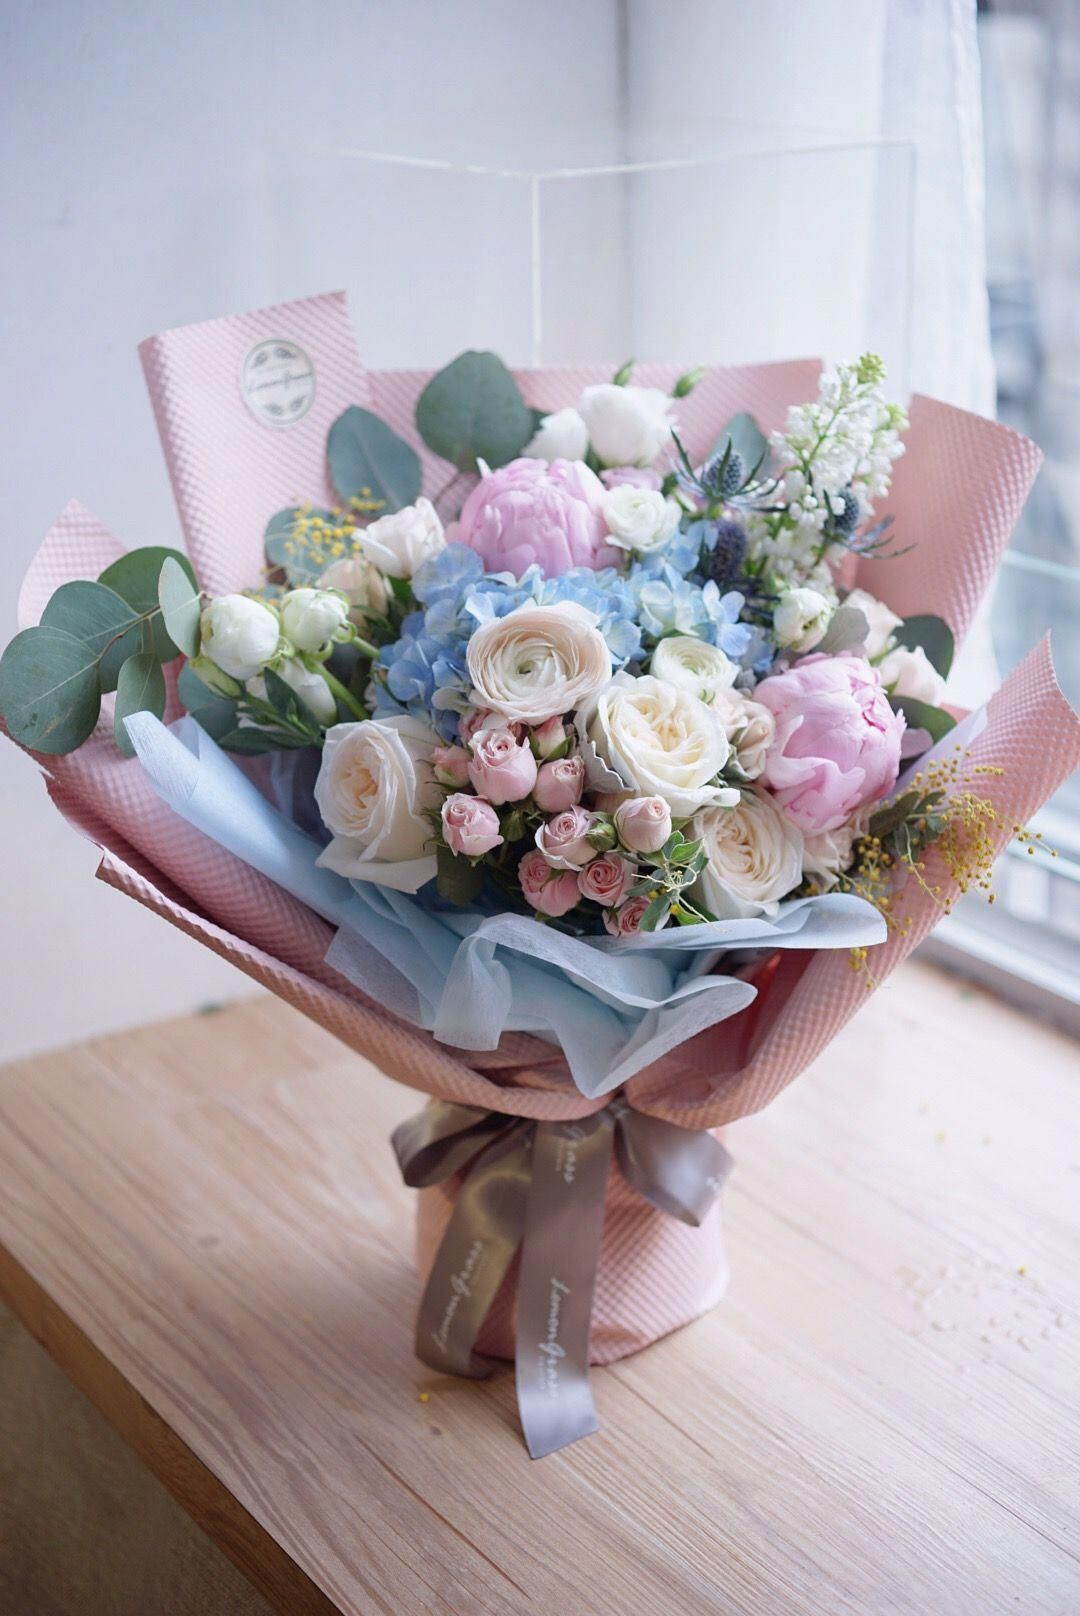 Discovered By N ι C σ ℓ є Find Images And Videos About Flowers Pastel An Birthday Flowers Bouquet Luxury Flower Arrangement Birthday Flowers Arrangements